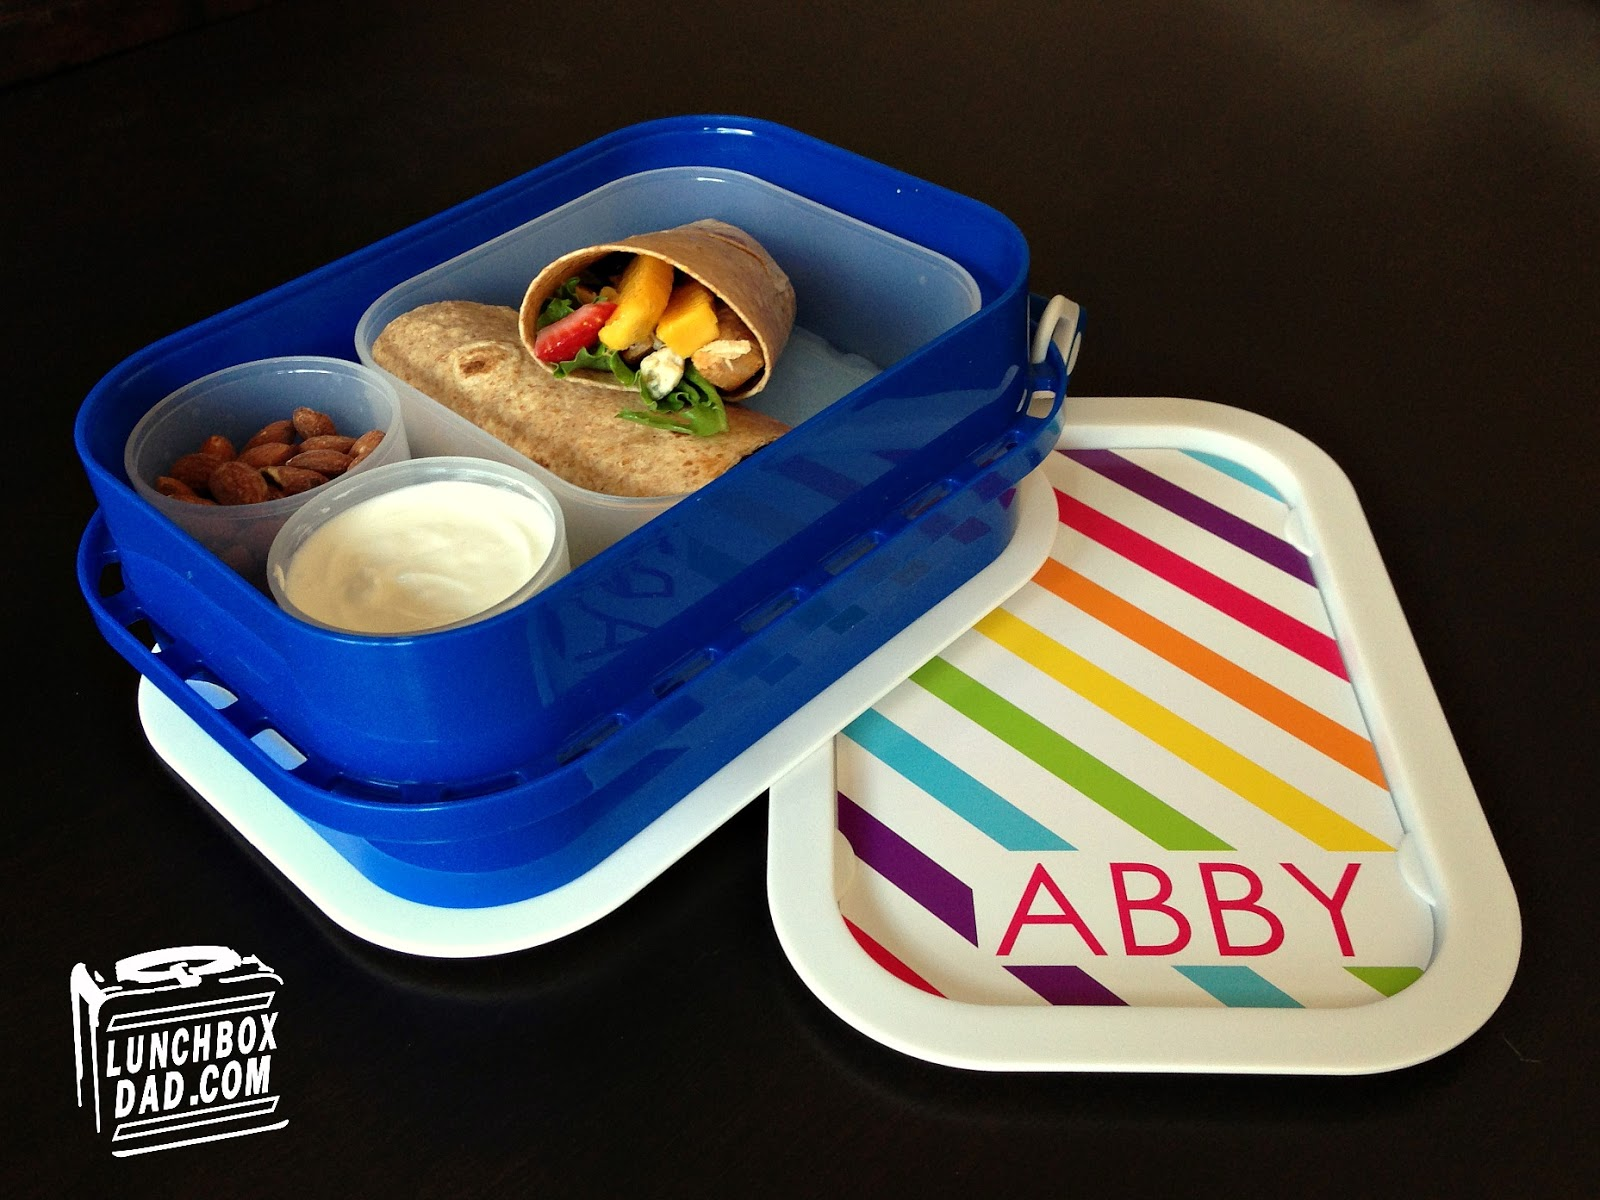 lunchbox dad product review yubo lunch box. Black Bedroom Furniture Sets. Home Design Ideas